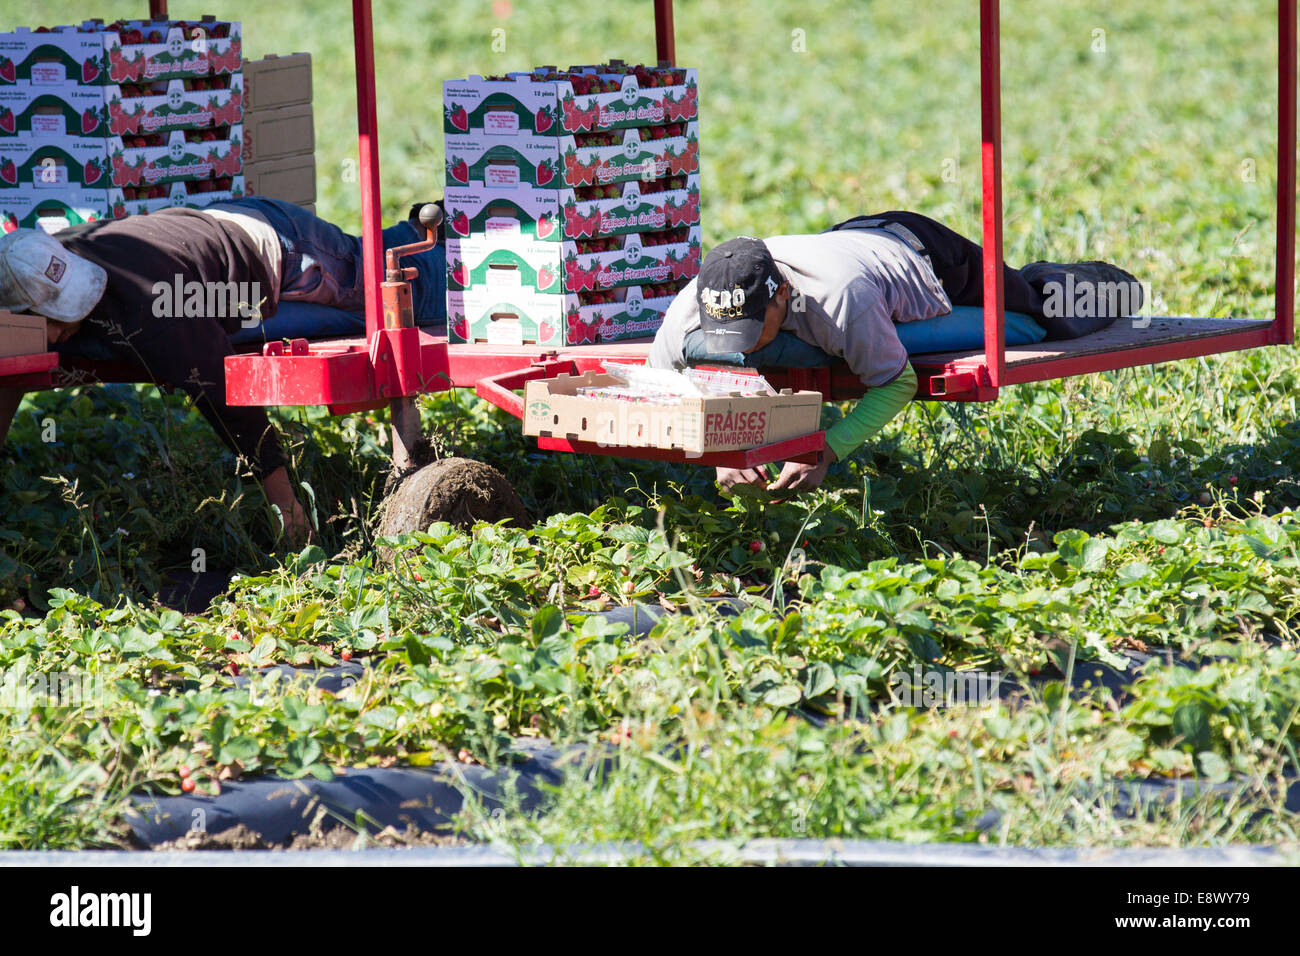 Machine strawberry picking - Stock Image